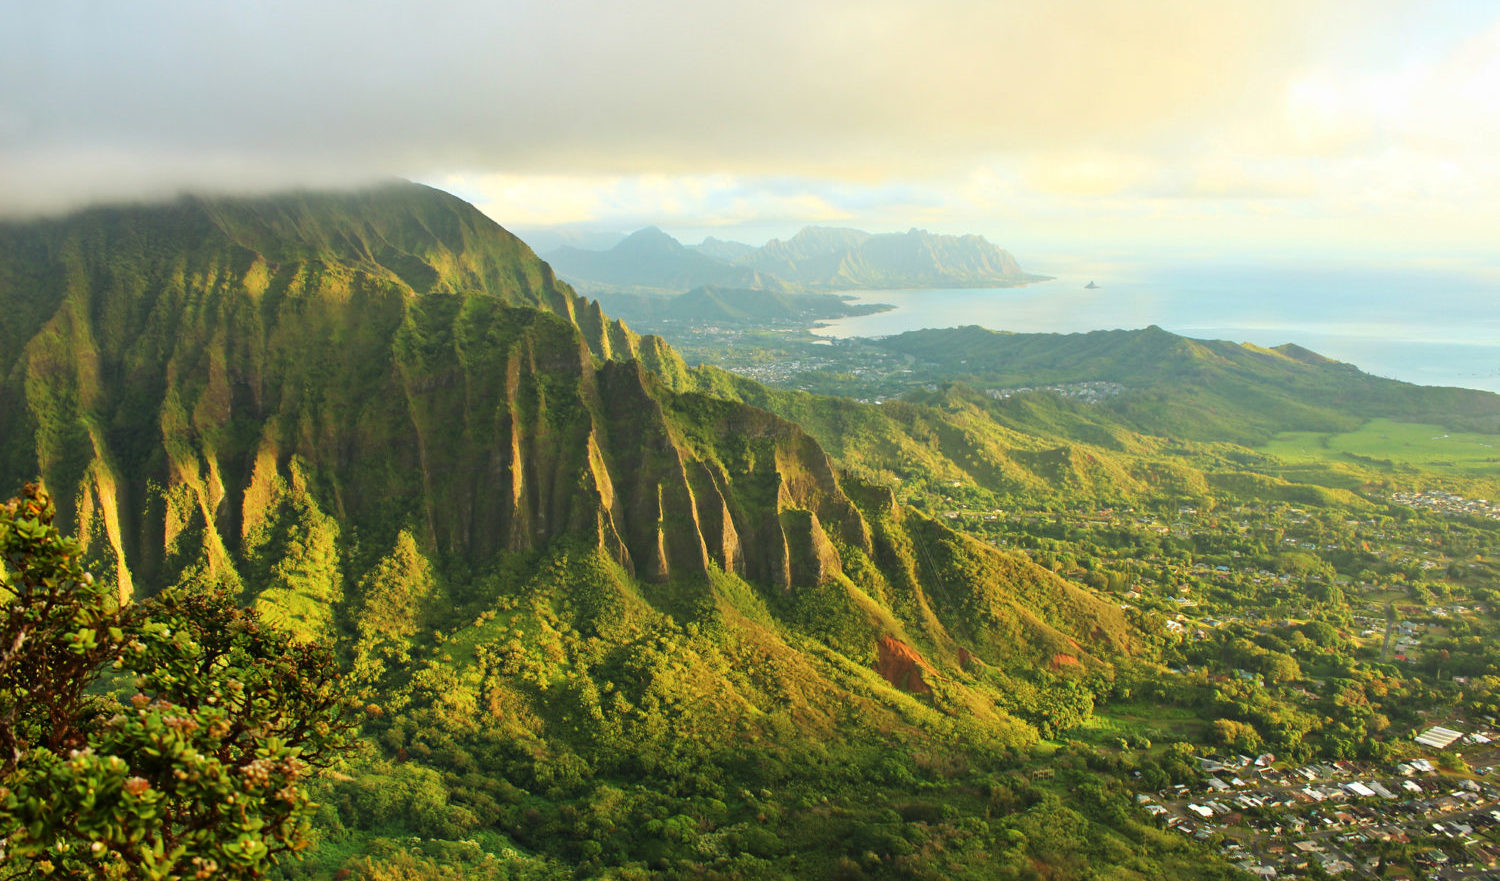 The lush mountains of windward Oahu, Hawaii.